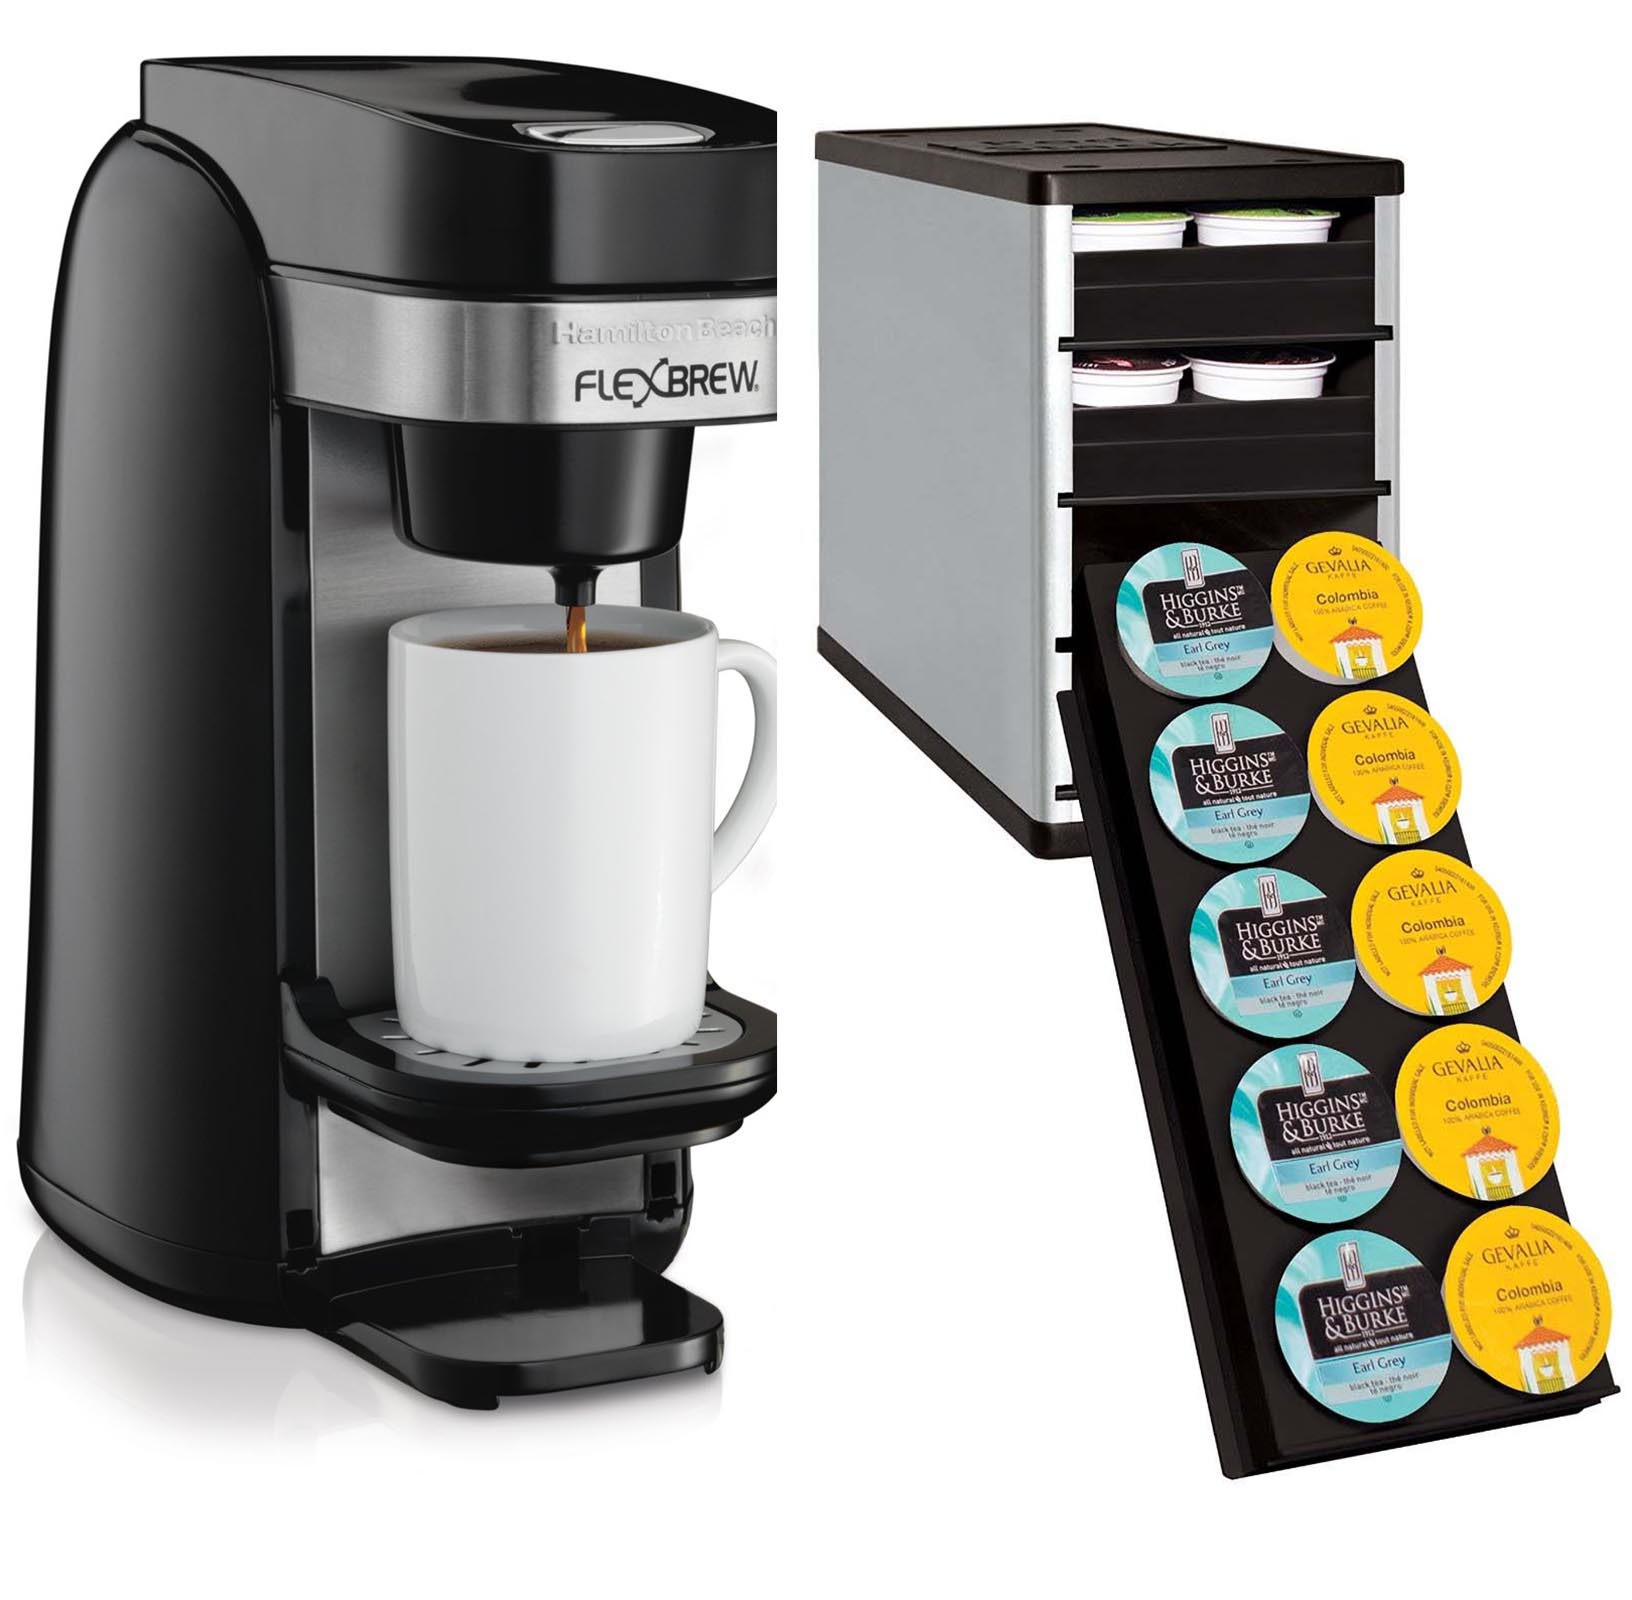 40 cup coffee maker instructions